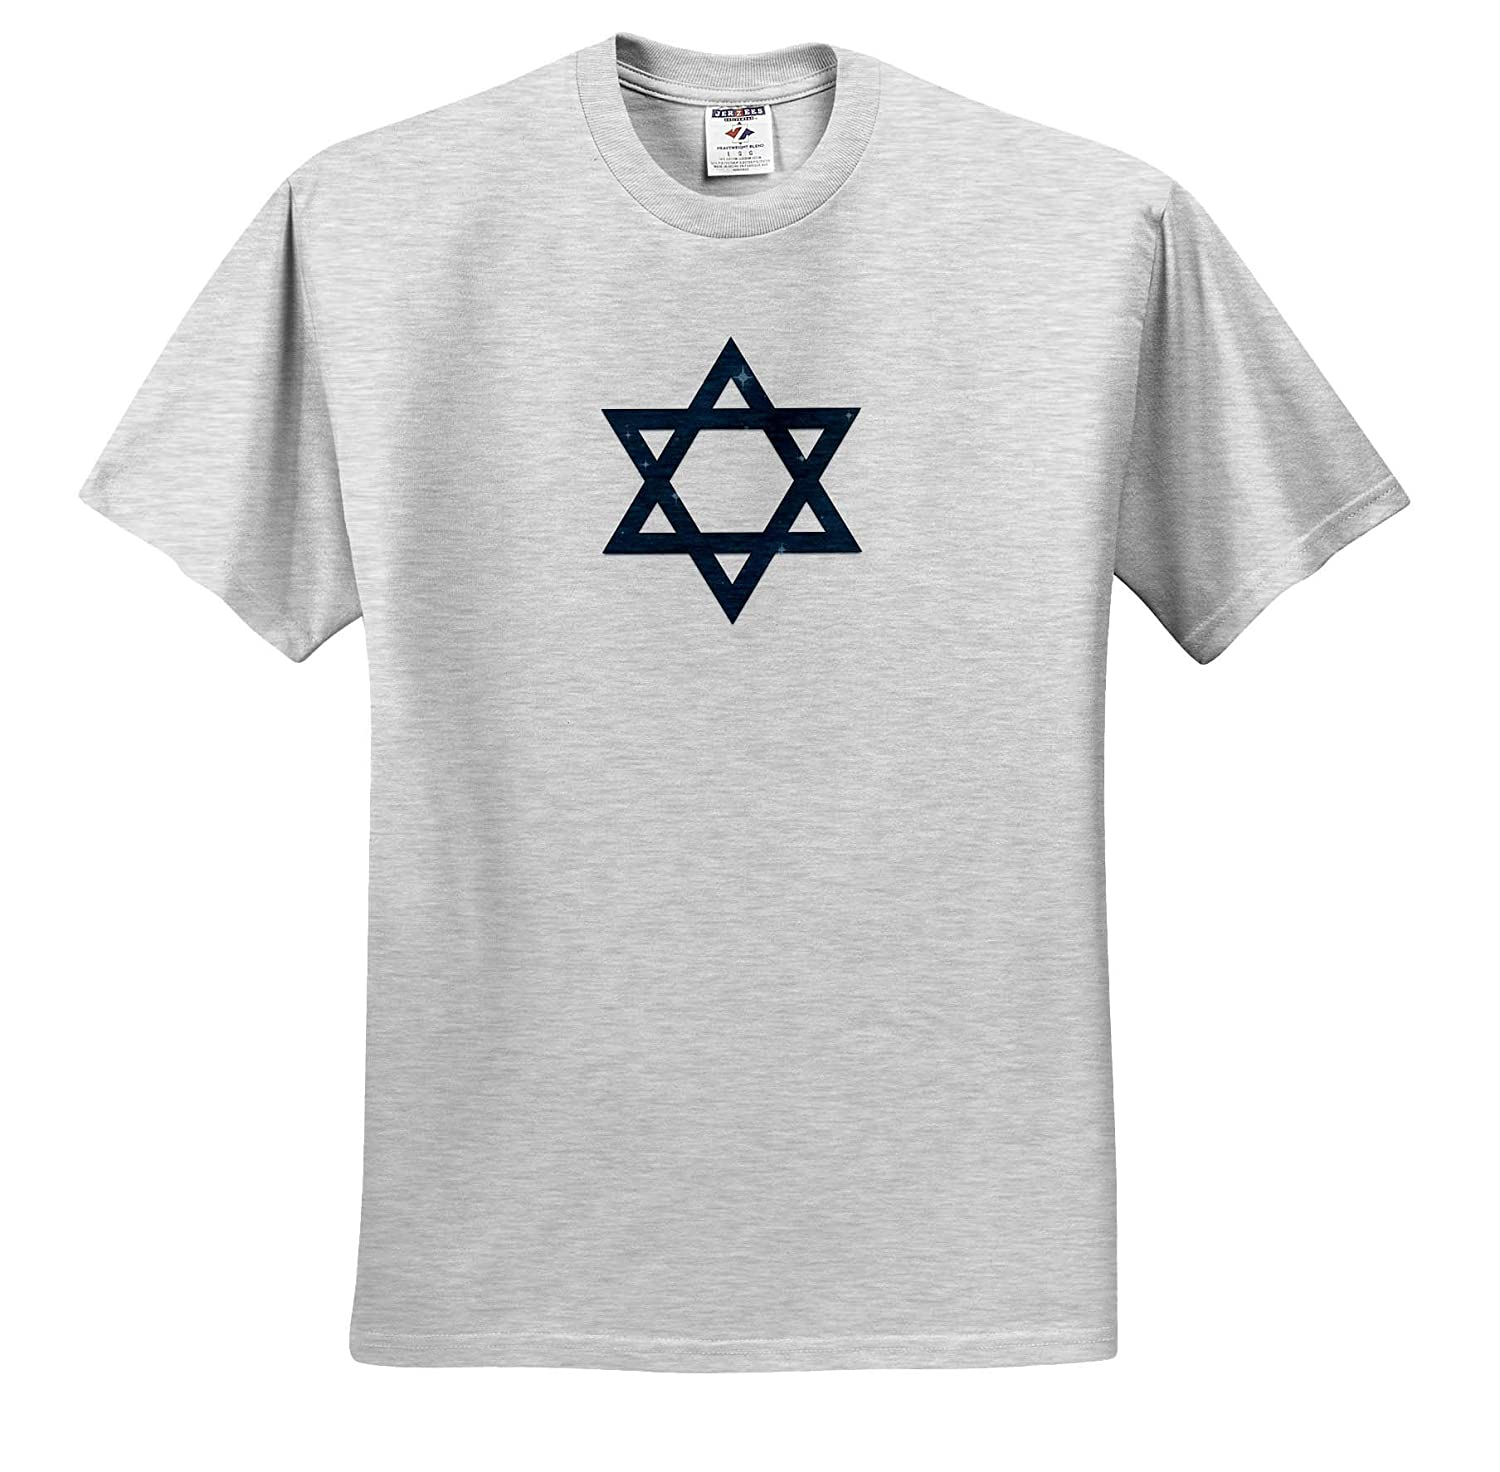 T-Shirts Dark Blue Star of David Decorated with Blue Stars on White 3dRose Alexis Design Star of David